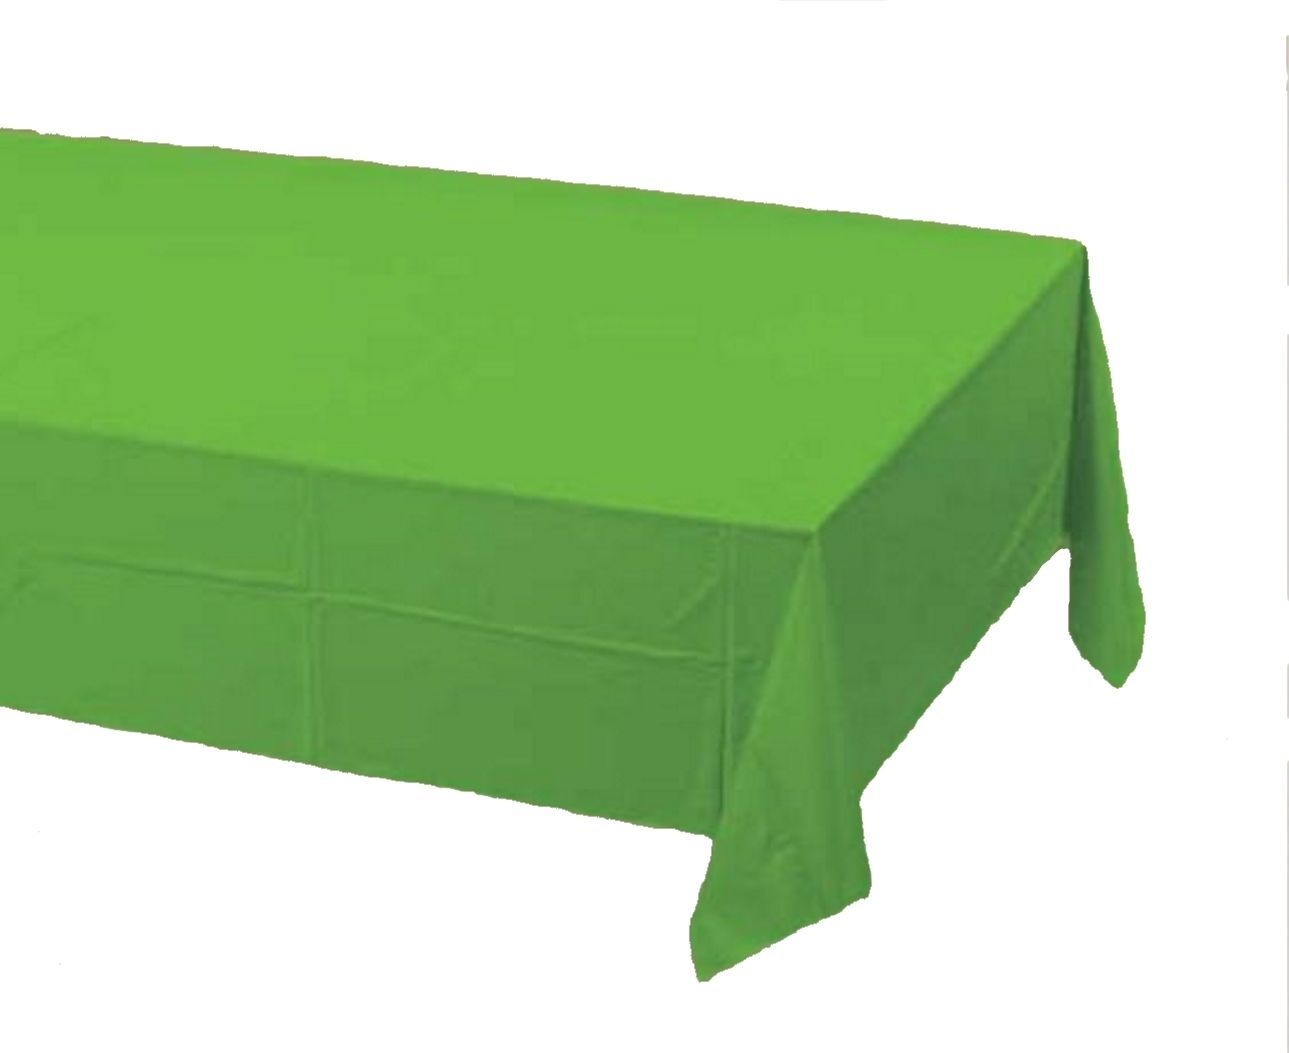 2 Creative Converting Paper - plastic lined  Banquet Table Covers Citrus green